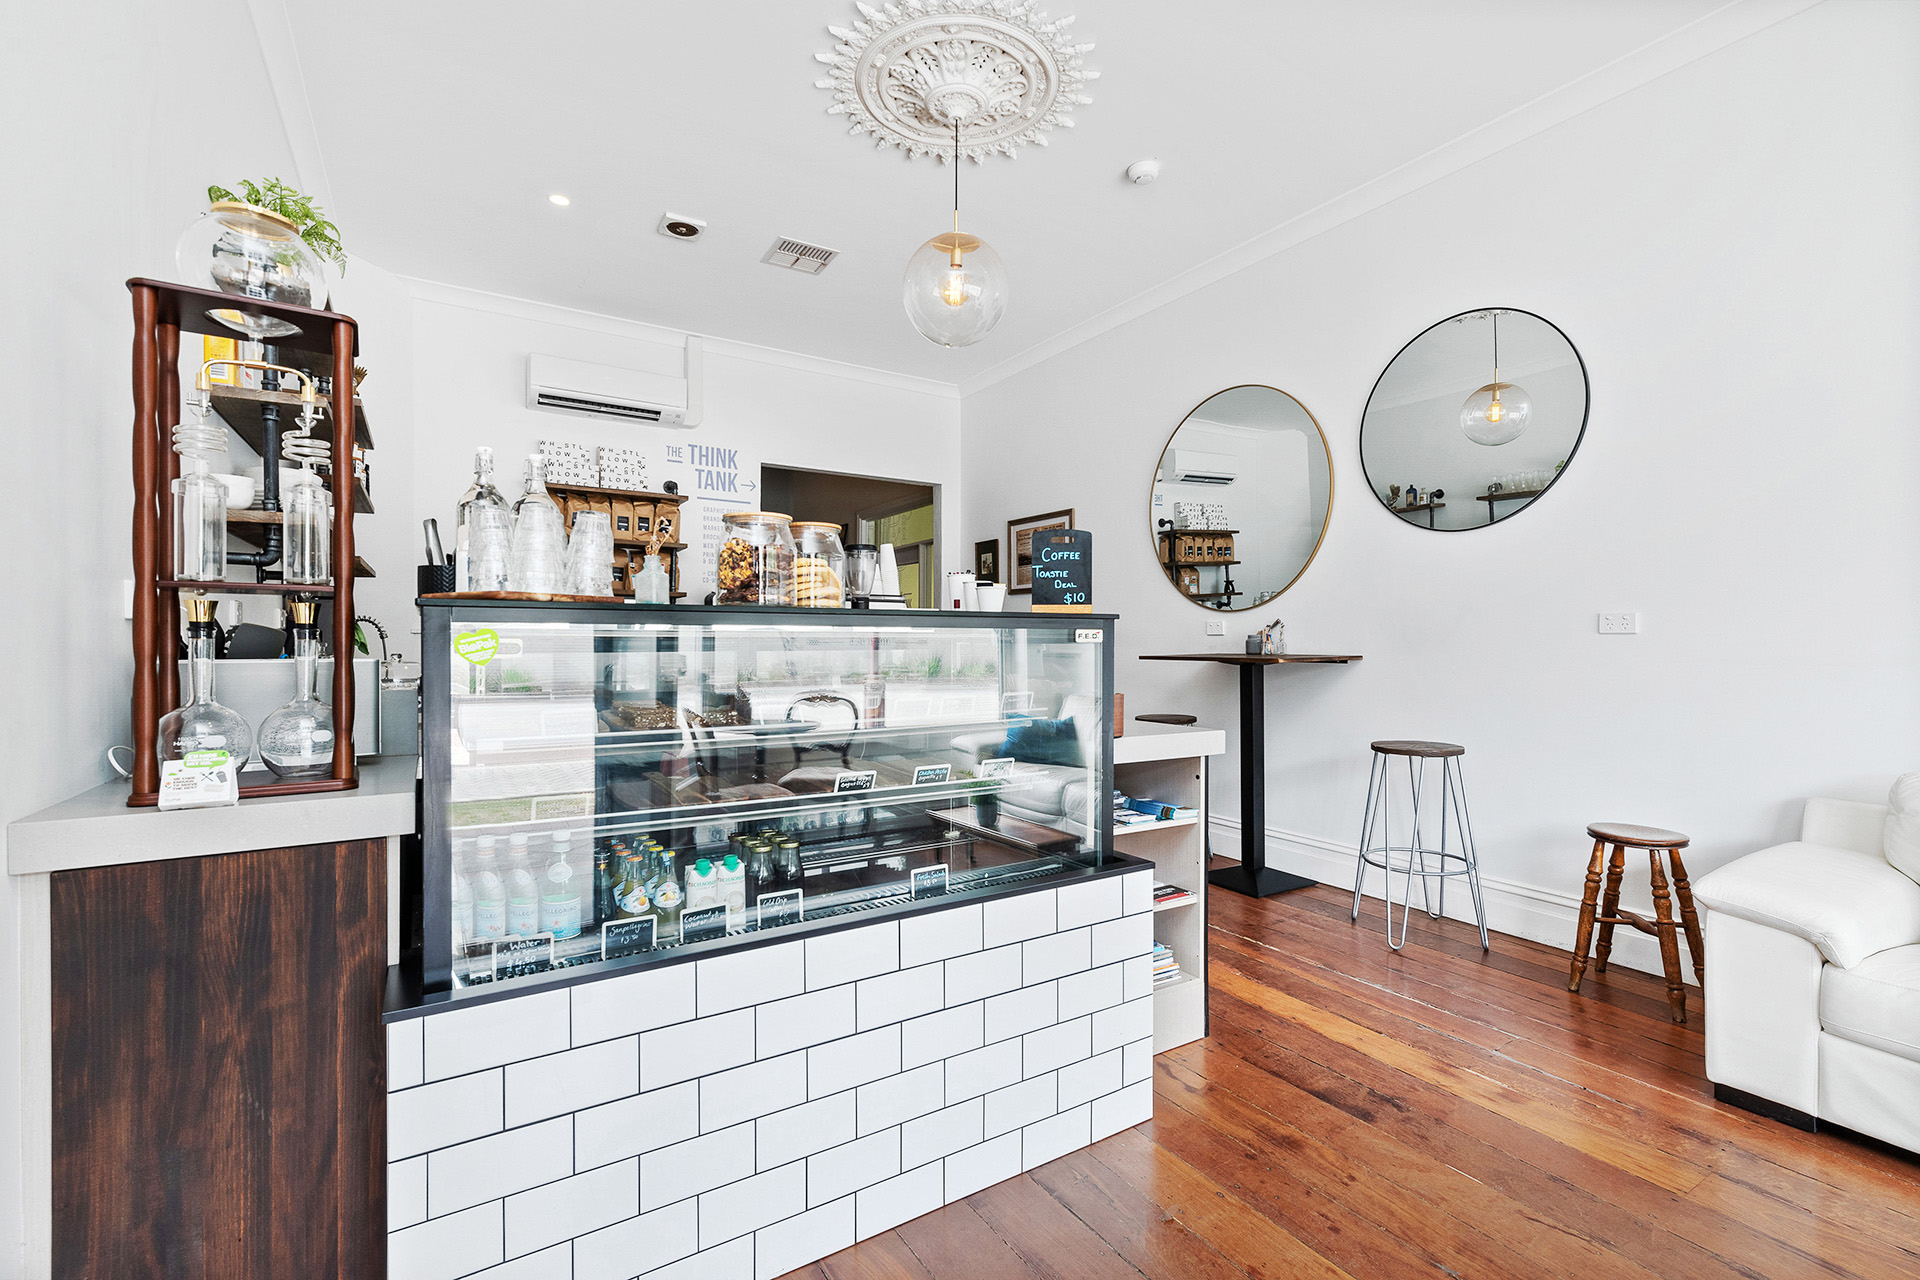 Crush offers shared workspace in Northbridge